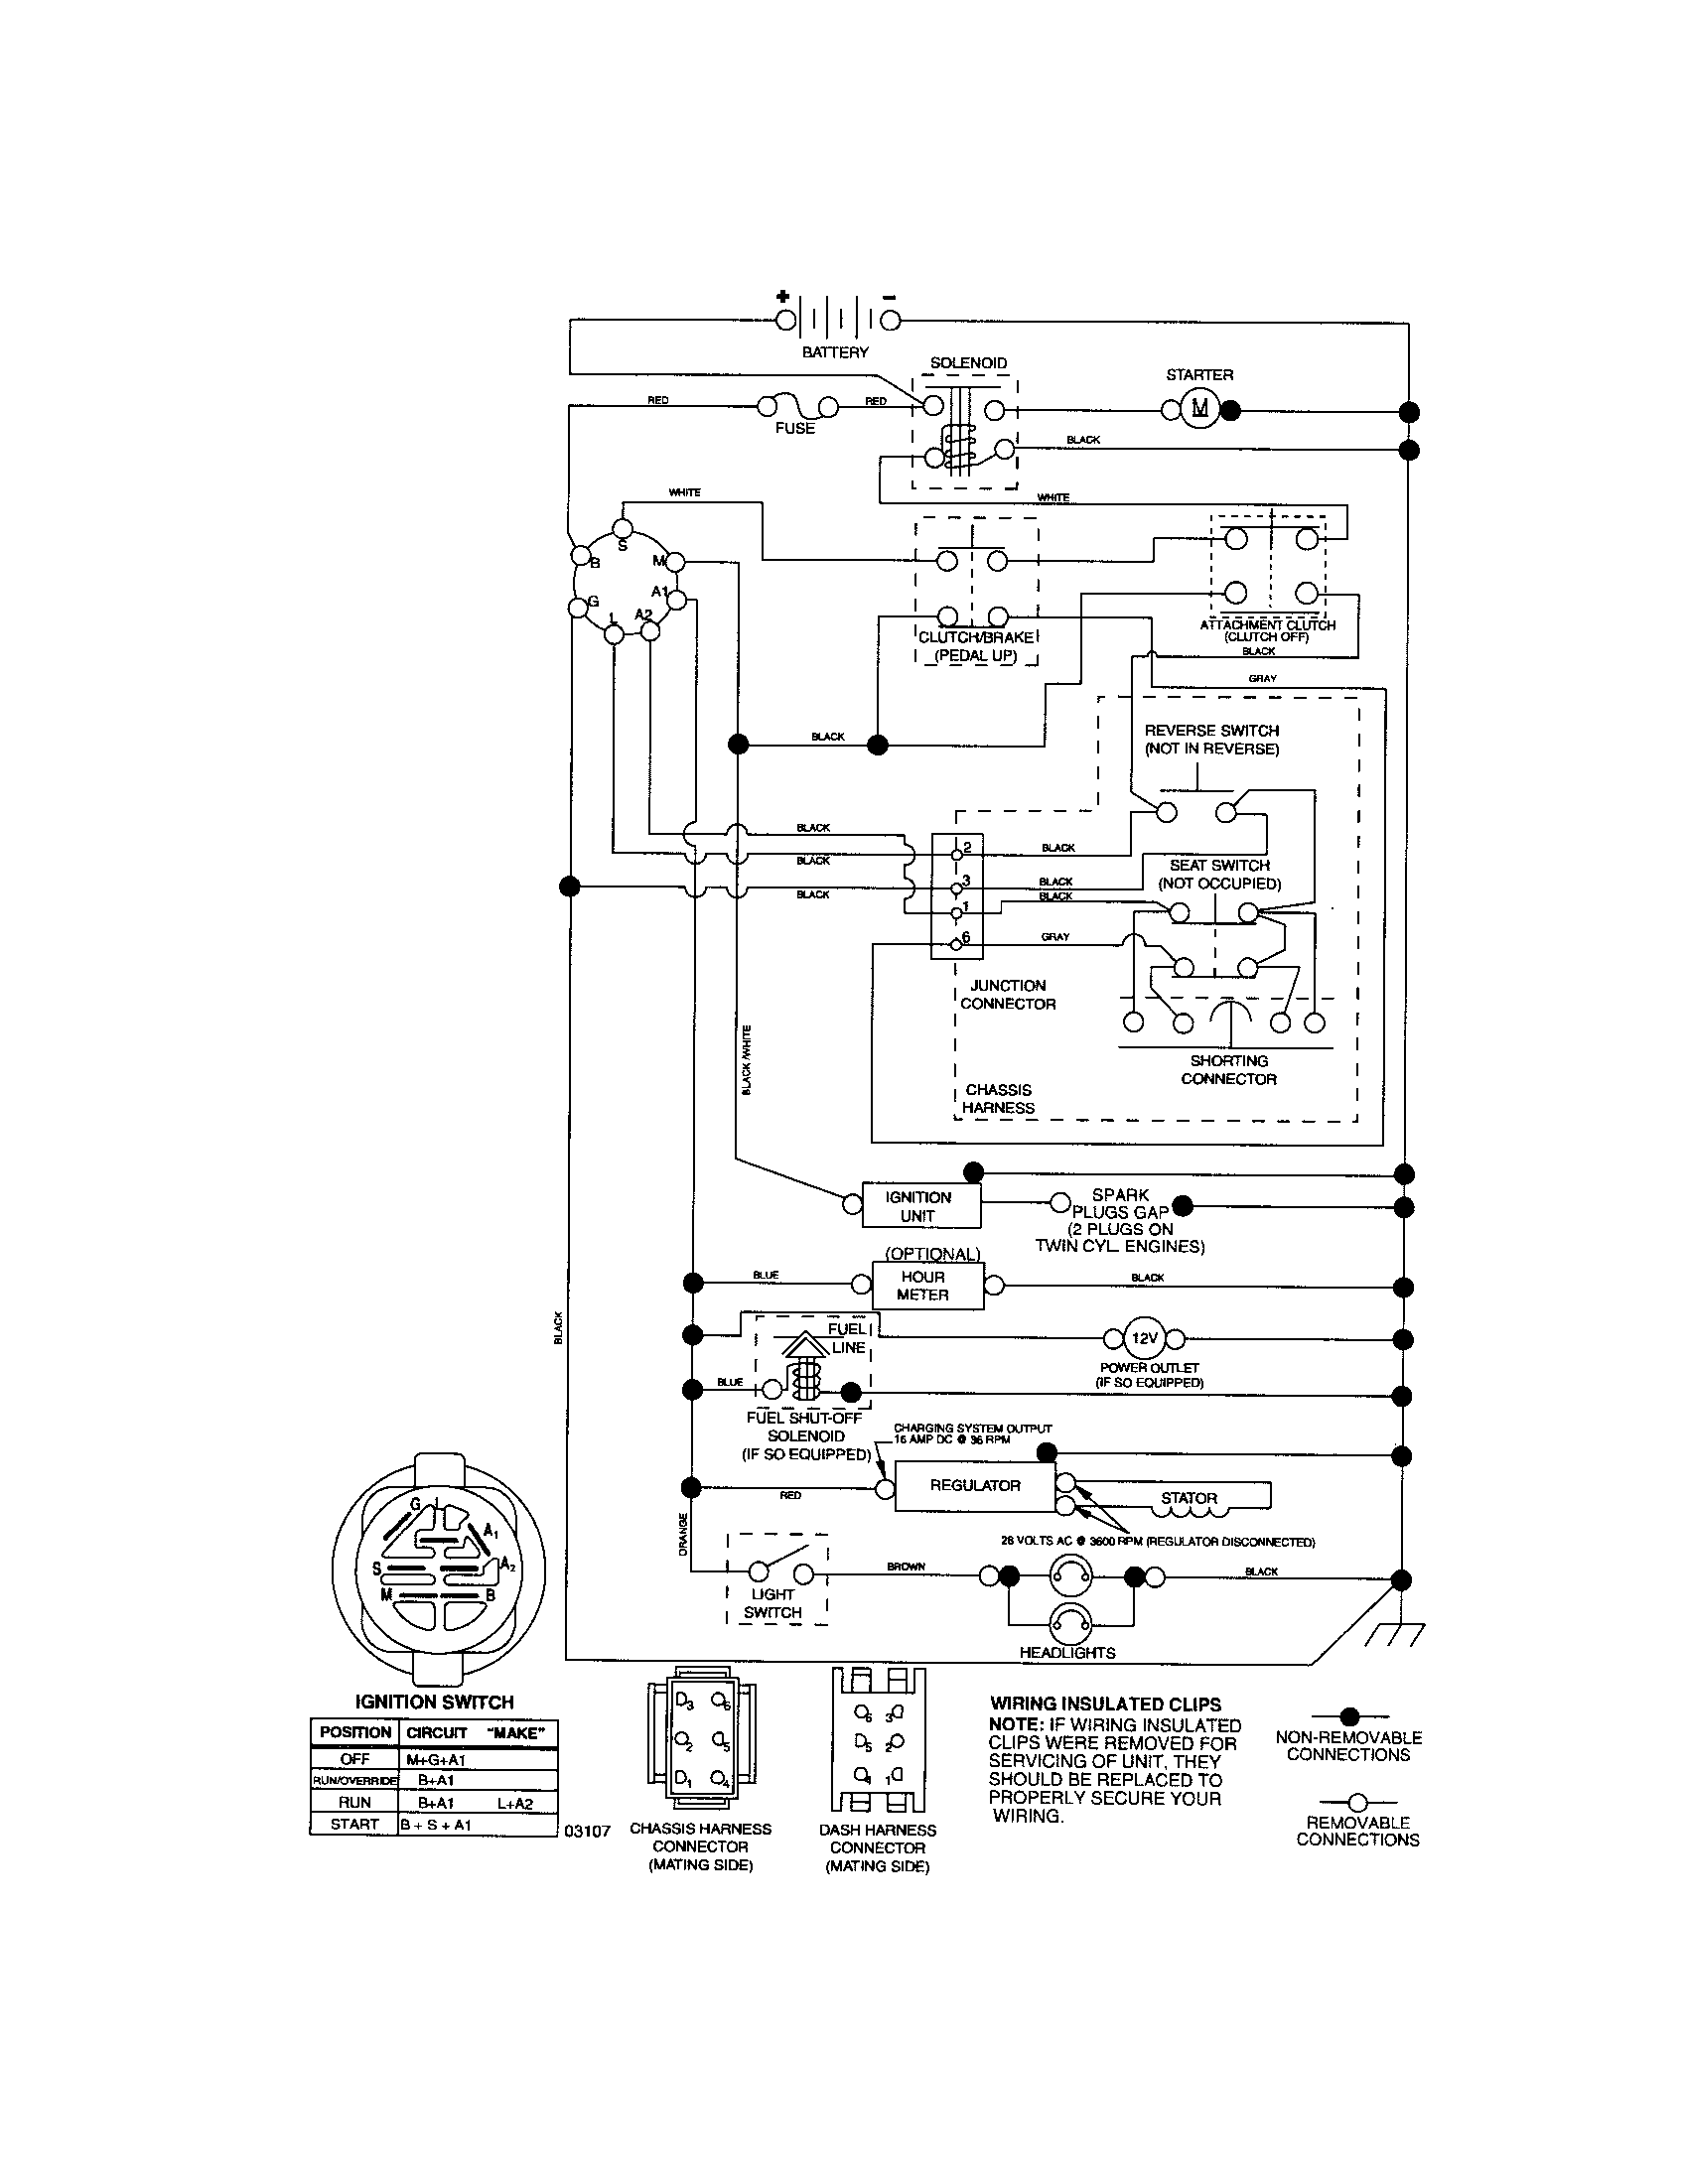 385972630537704901 on electrical wiring diagram shop pinterest